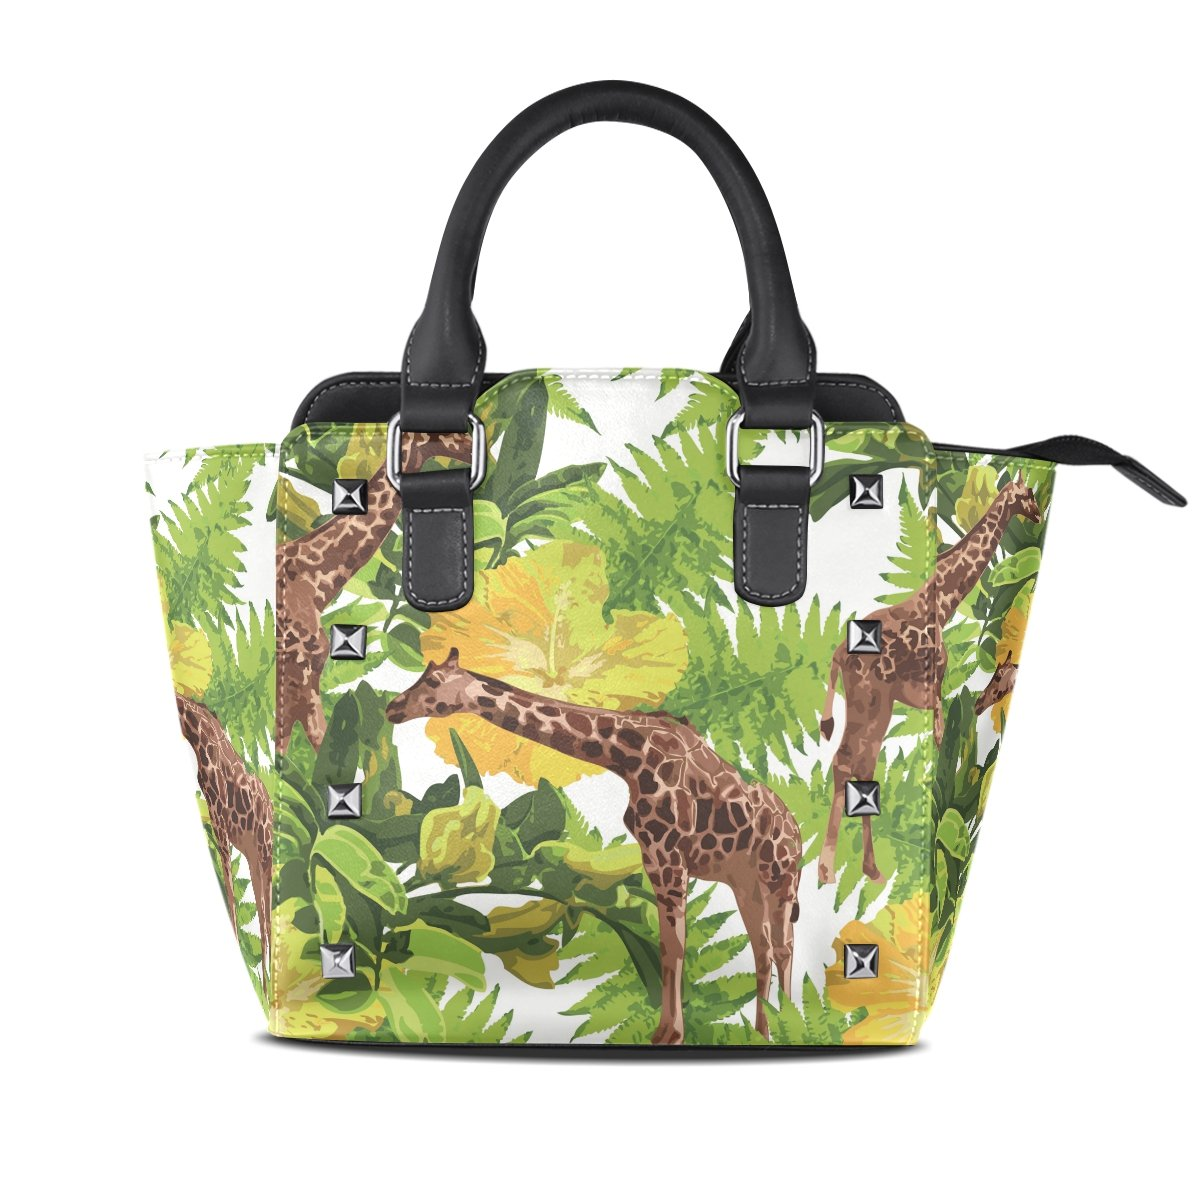 Womens Genuine Leather Hangbags Tote Bags Leaves Giraffes Purse Shoulder Bags